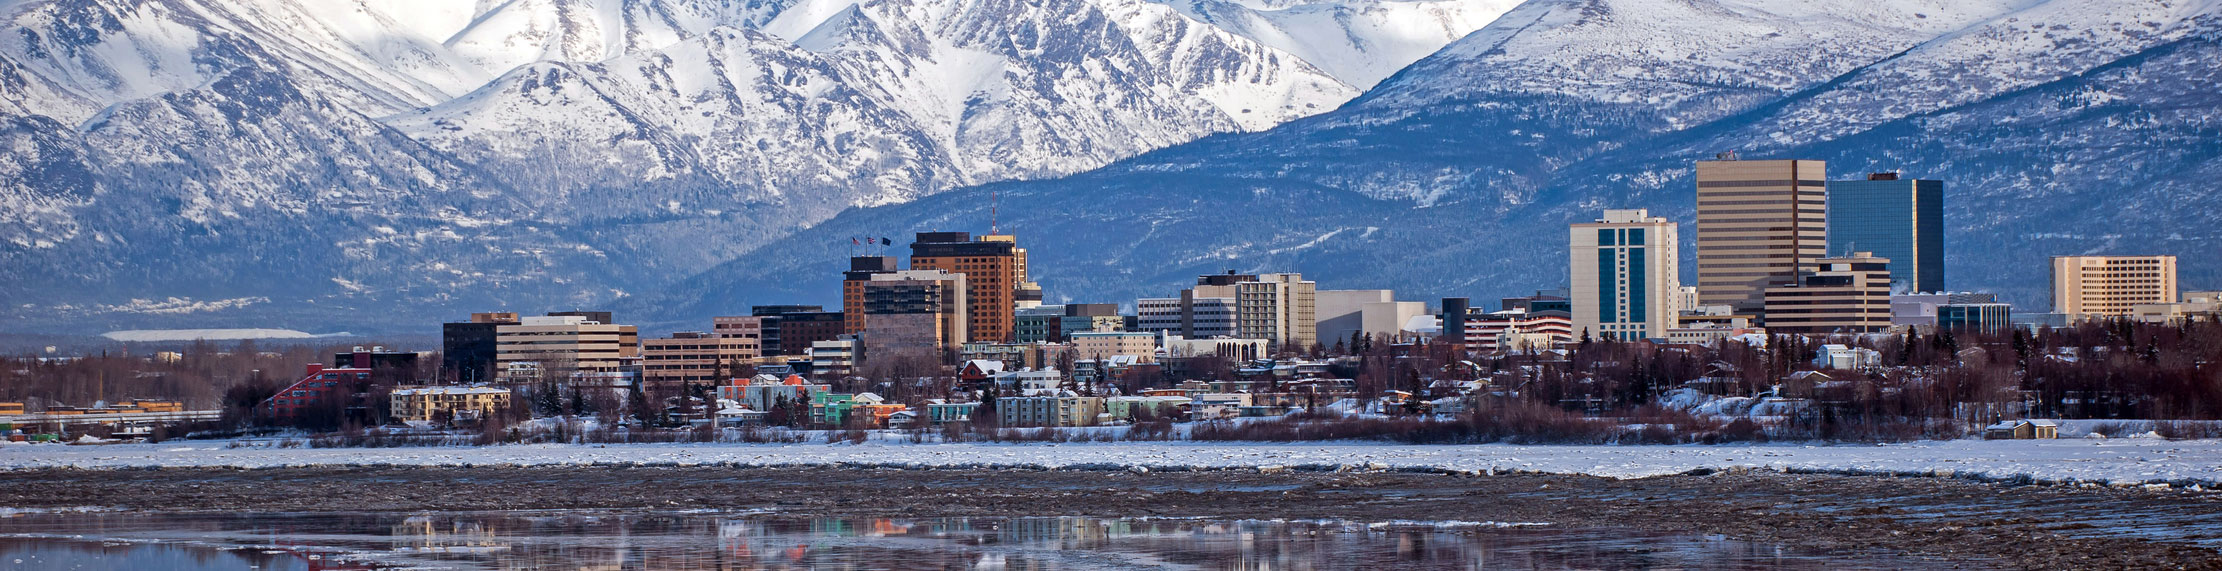 Downtown Anchorage Alaska with mountain backdrop.